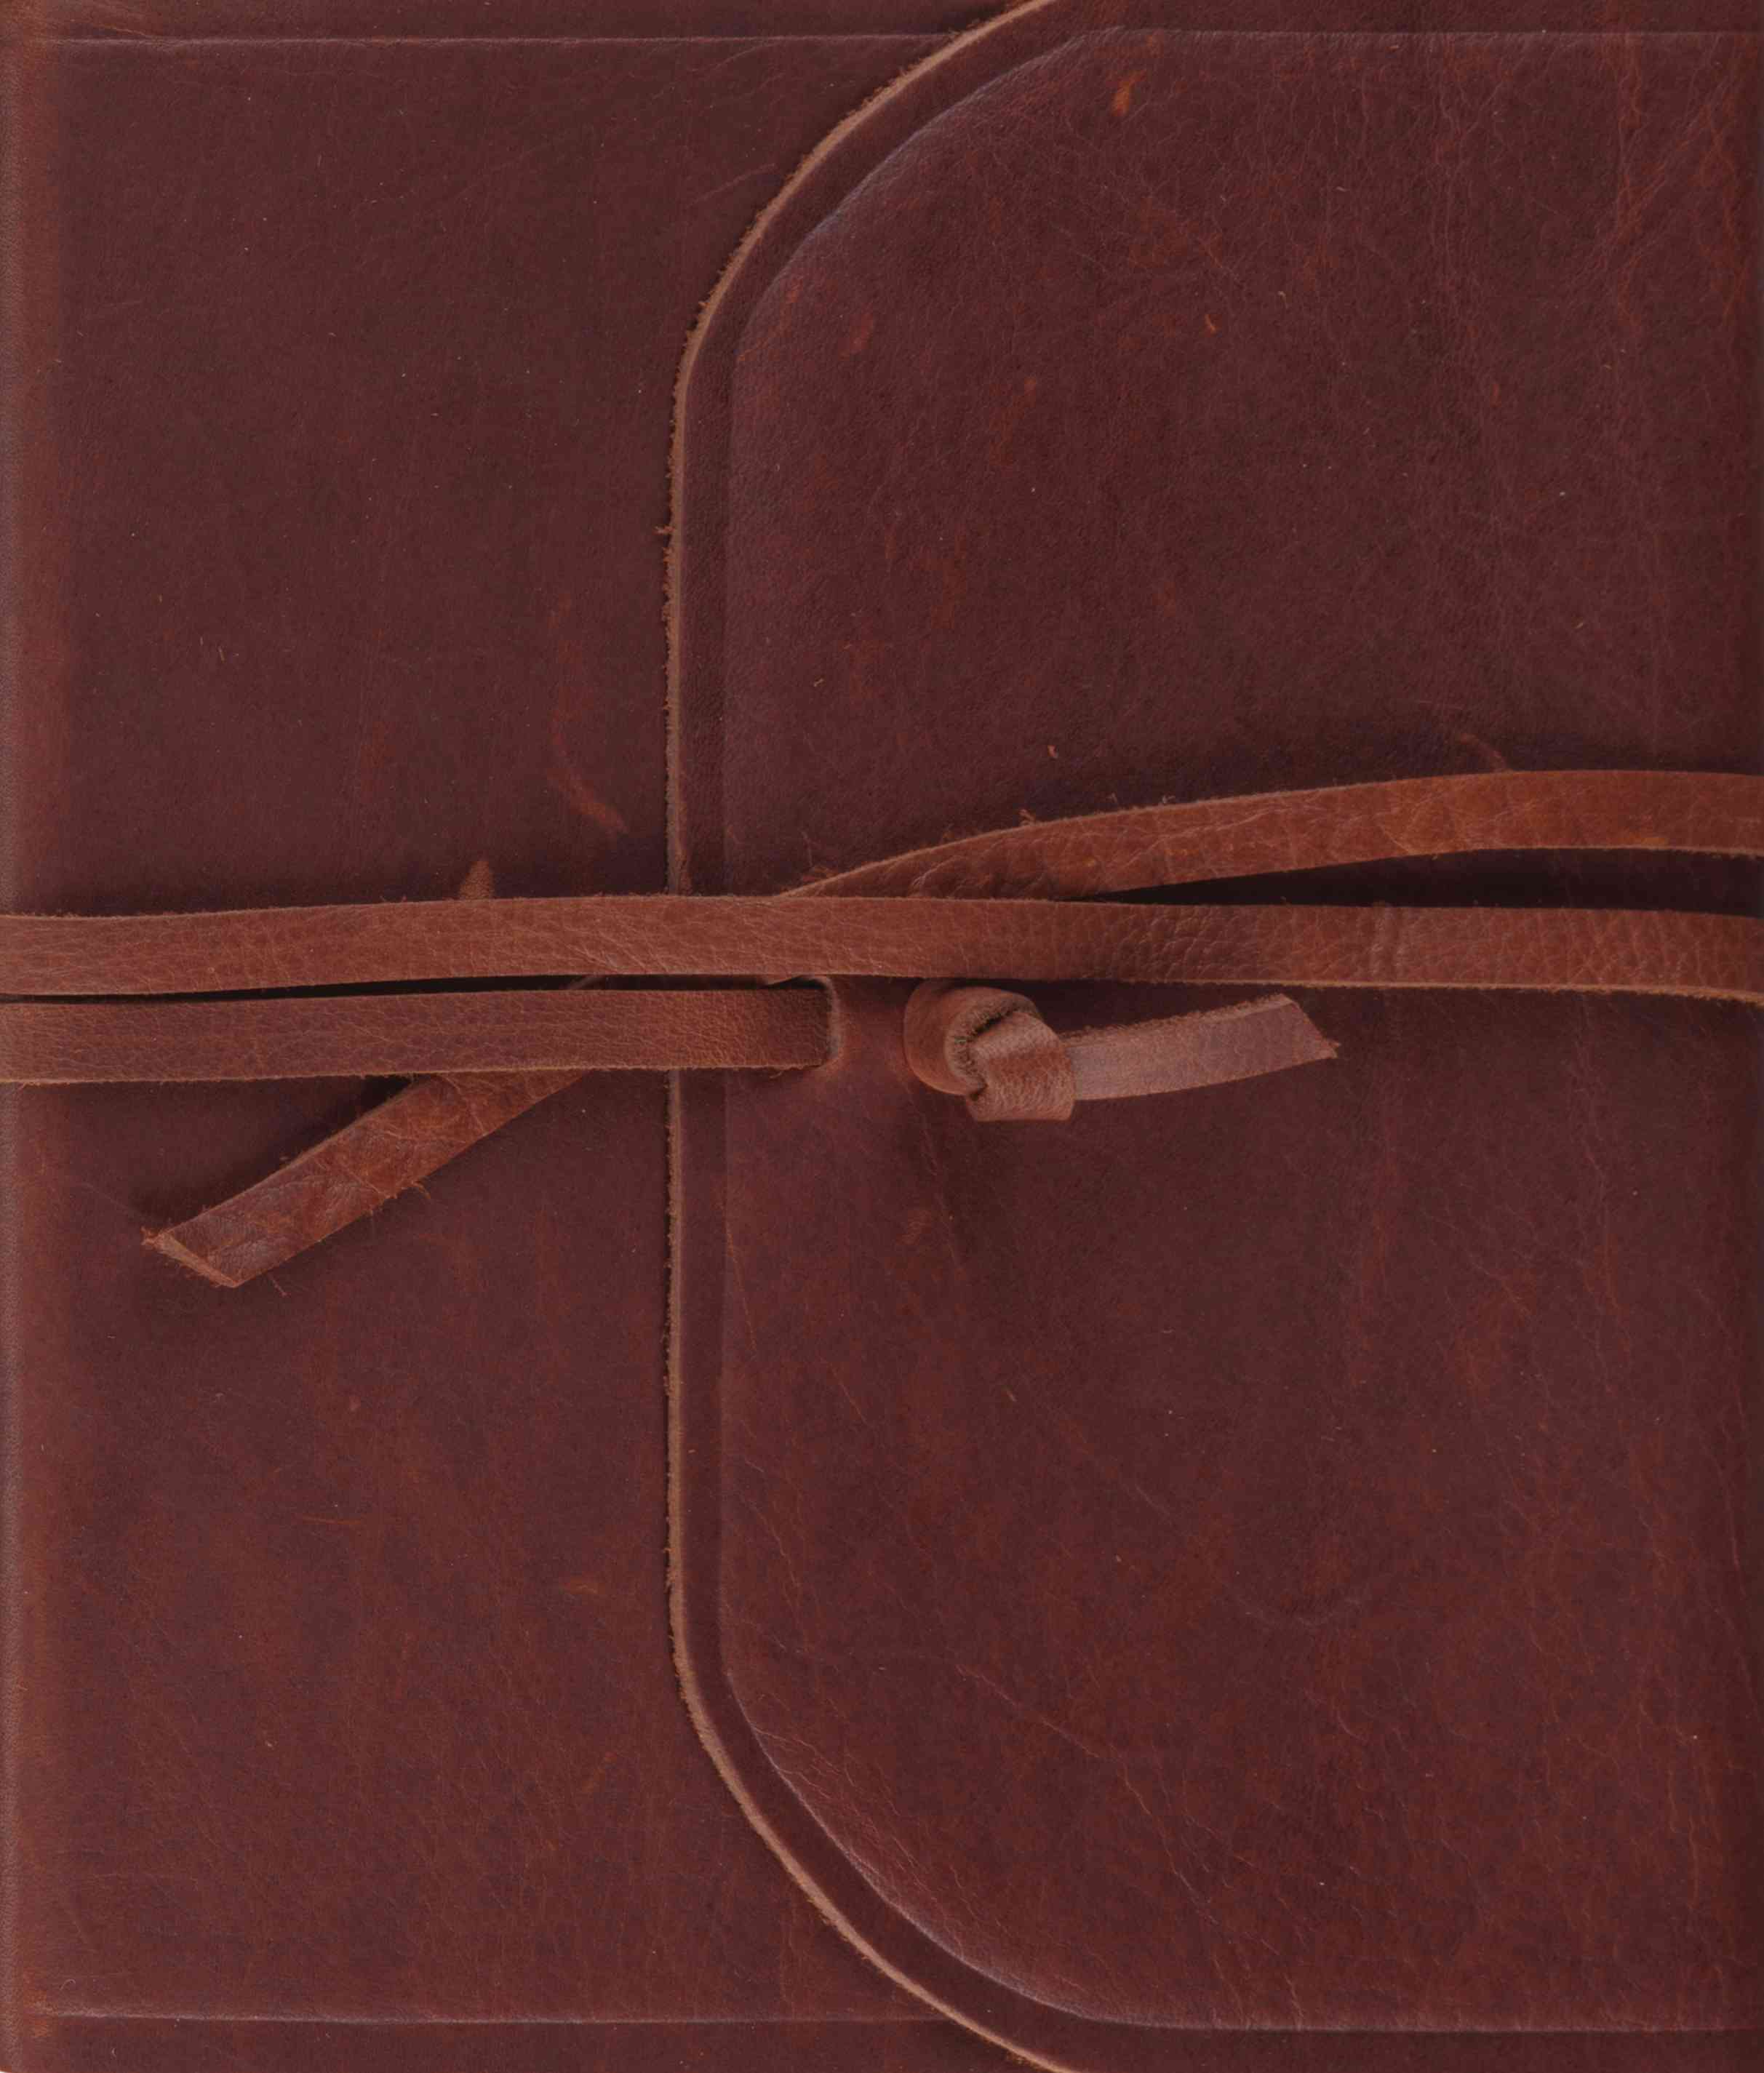 The Holy Bible: English Standard Version, Brown, Natural Leather, Single Column Journaling Bible (Paperback)